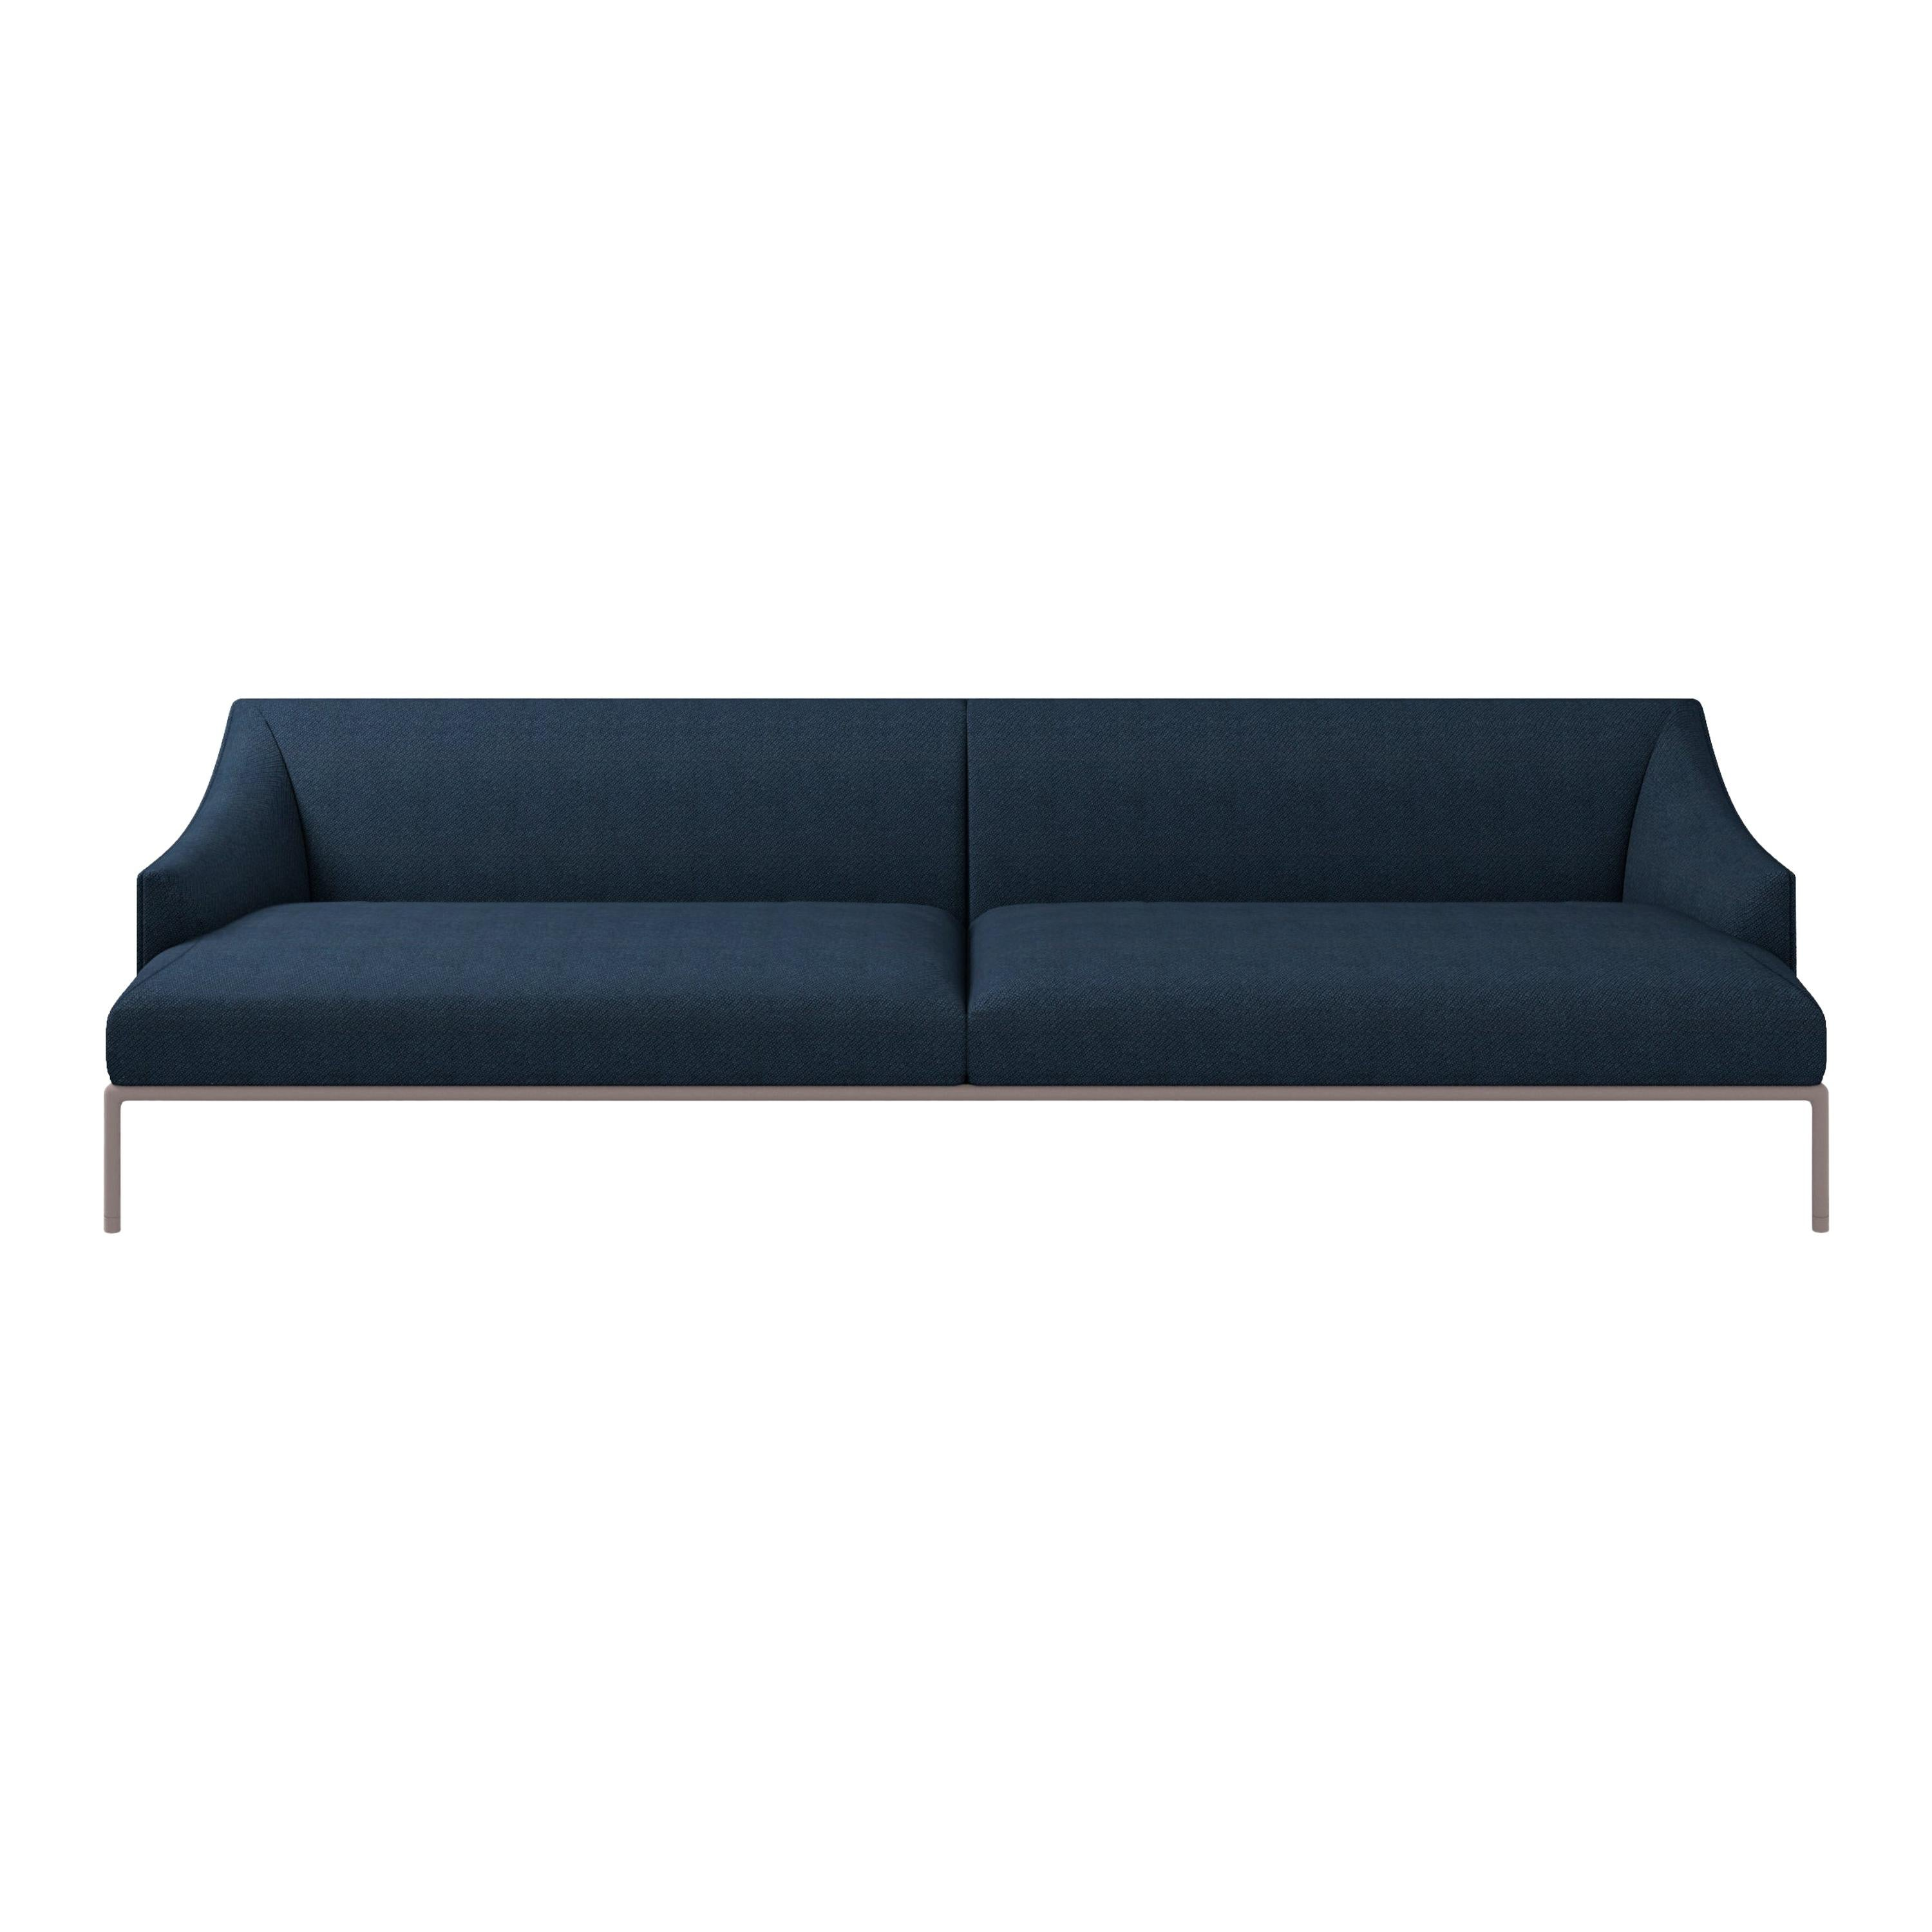 Cappellini High Time Three-Seat Sofa in Fabric or Leather by Christophe Pillet